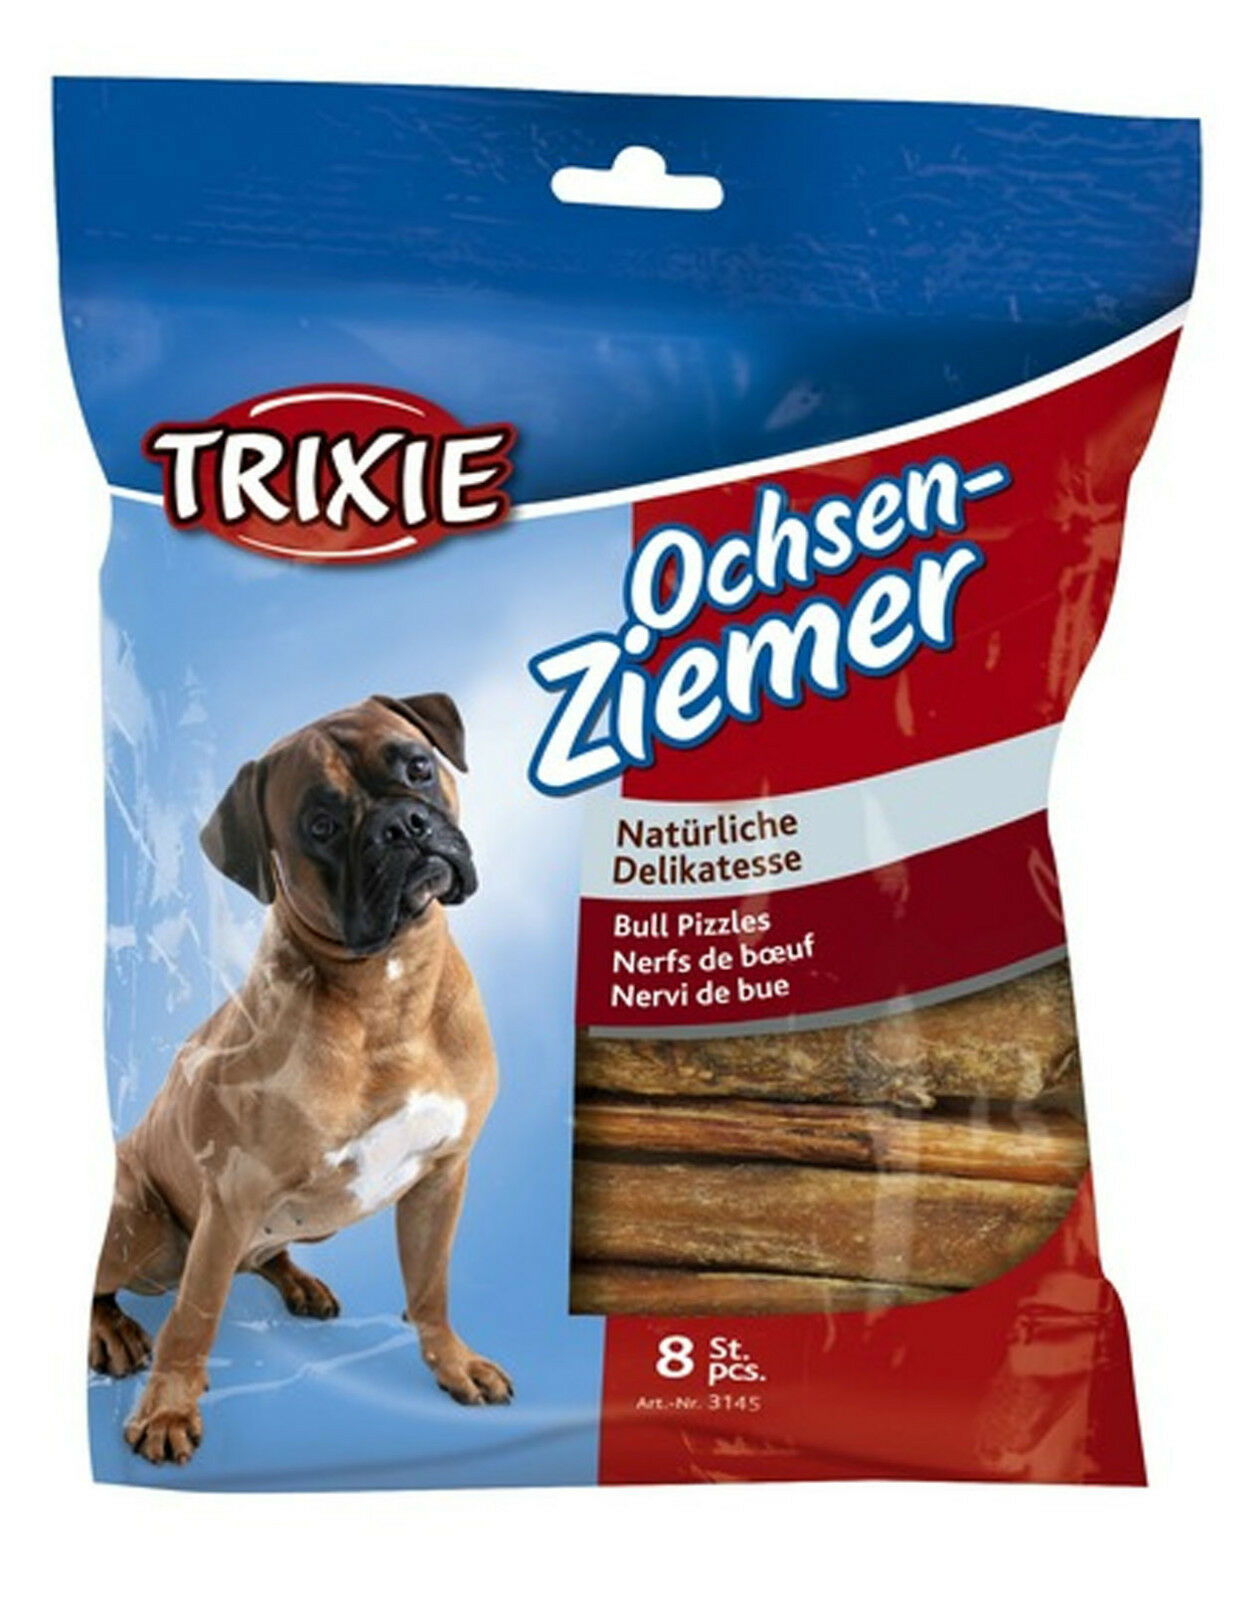 trixie bull pizzles bully sticks 12cm pack of 8 dog treats chews 100g mpn 3145 eur 6 74. Black Bedroom Furniture Sets. Home Design Ideas